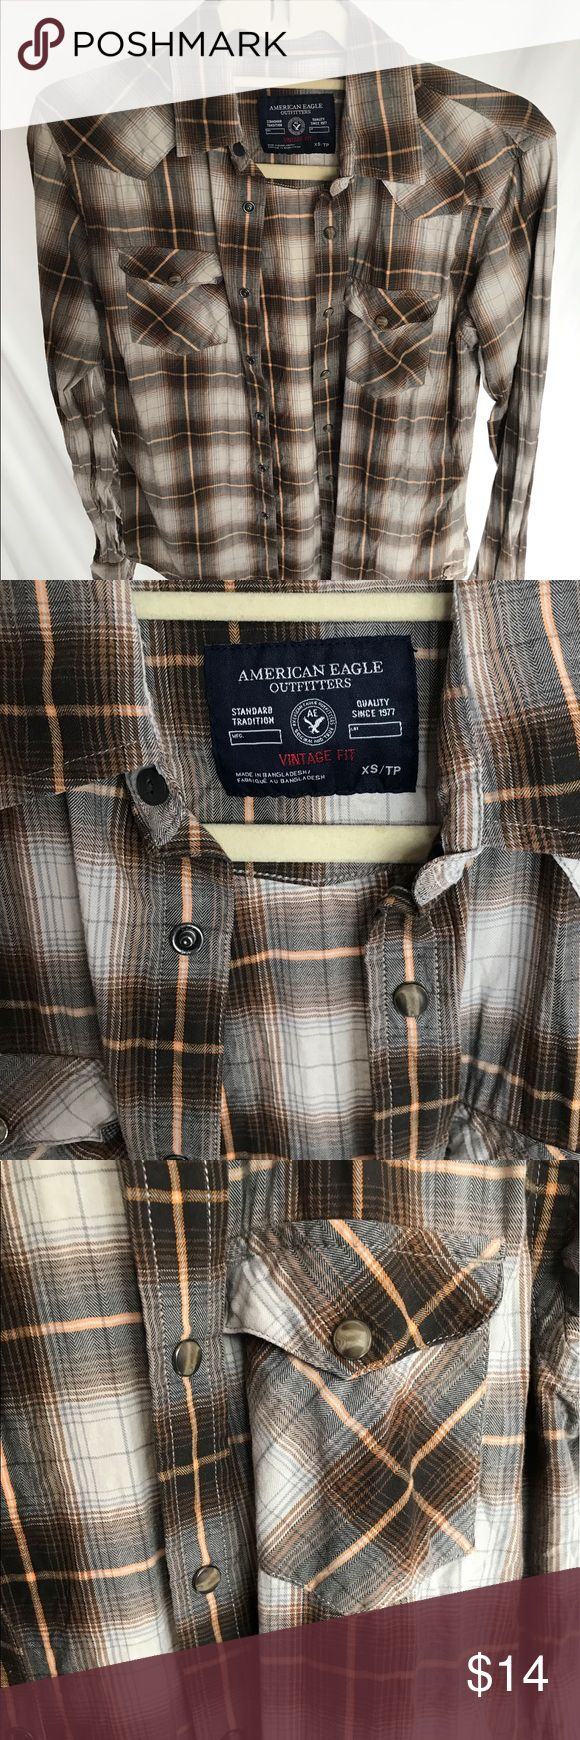 American 🦅 Eagle Men's Americana Button Down XS American 🦅 Eagle Americana Button Down with dual breast pockets in Gently loved Condition. Size XS it's a men's, but I've worn it as an over shirt with jeans🙂 #'s men's, shirt, top, Button Down, western, fit, American Eagle, sale 🛍 priced to sell ❤️🐱Kitty American Eagle Outfitters Shirts Casual Button Down Shirts